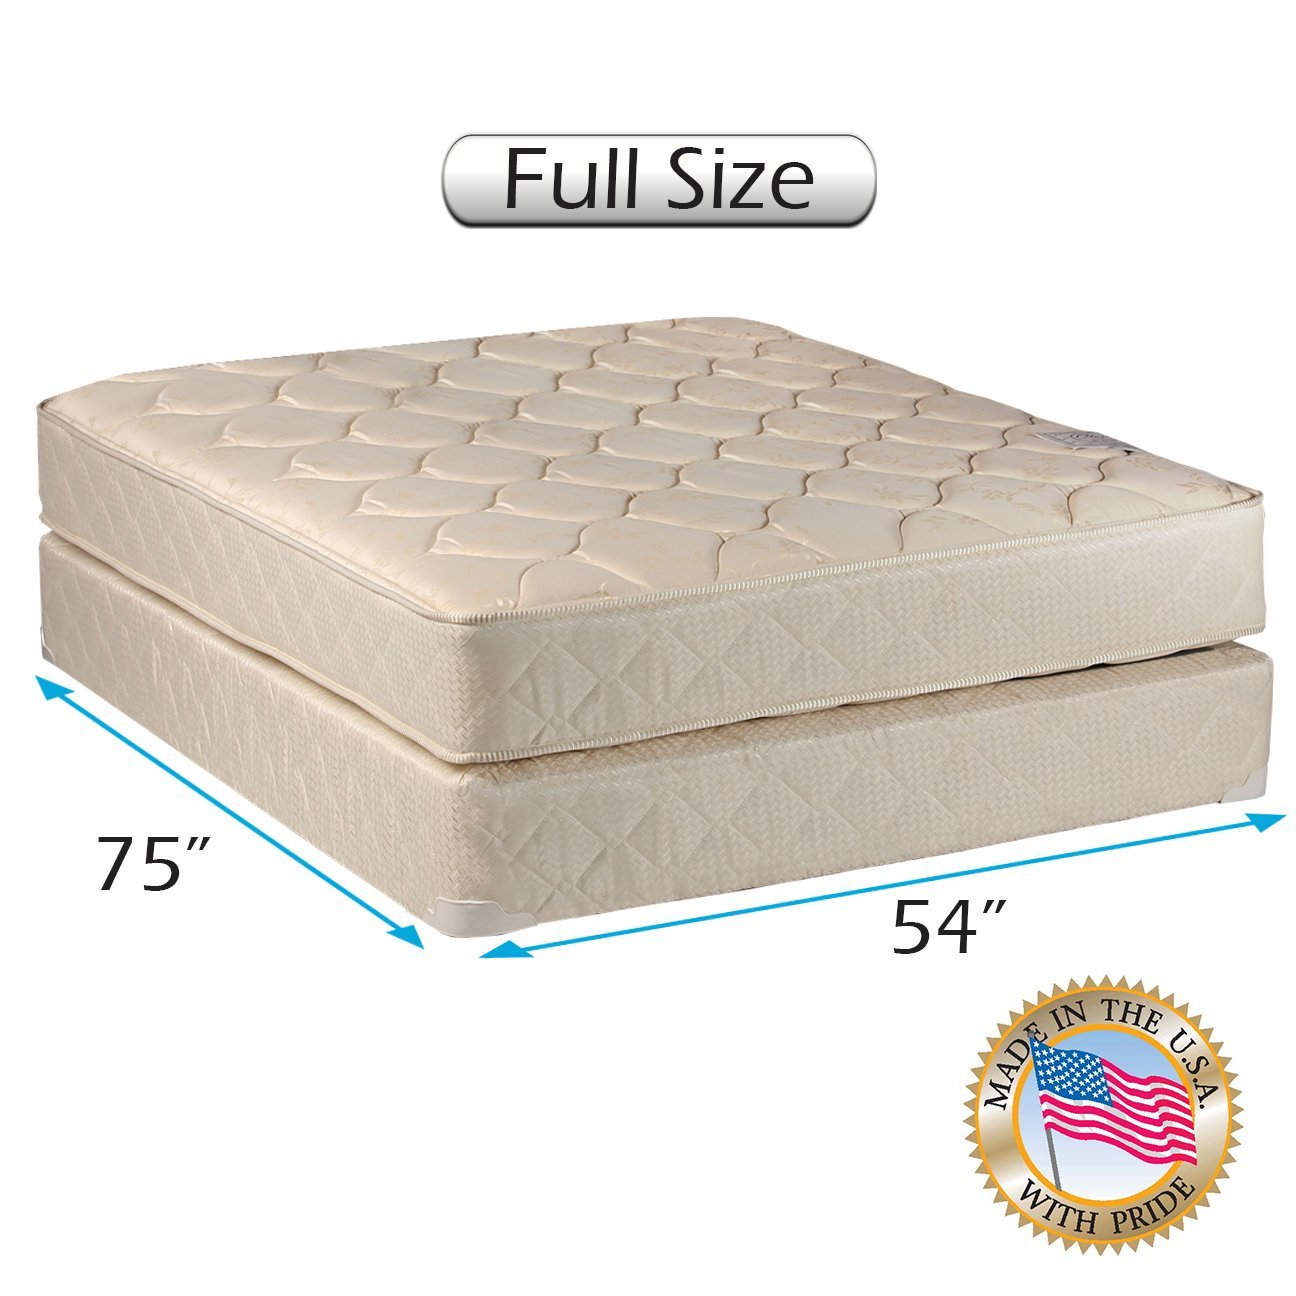 "Comfort Classic 2-Sided Full (54""x75""x9"") Gentle Firm Mattress set with Bed Frame Included - Spinal Support System, Fully Assembled, Orthopedic, Superior Quality, Longlasting by Dream Solutions USA"